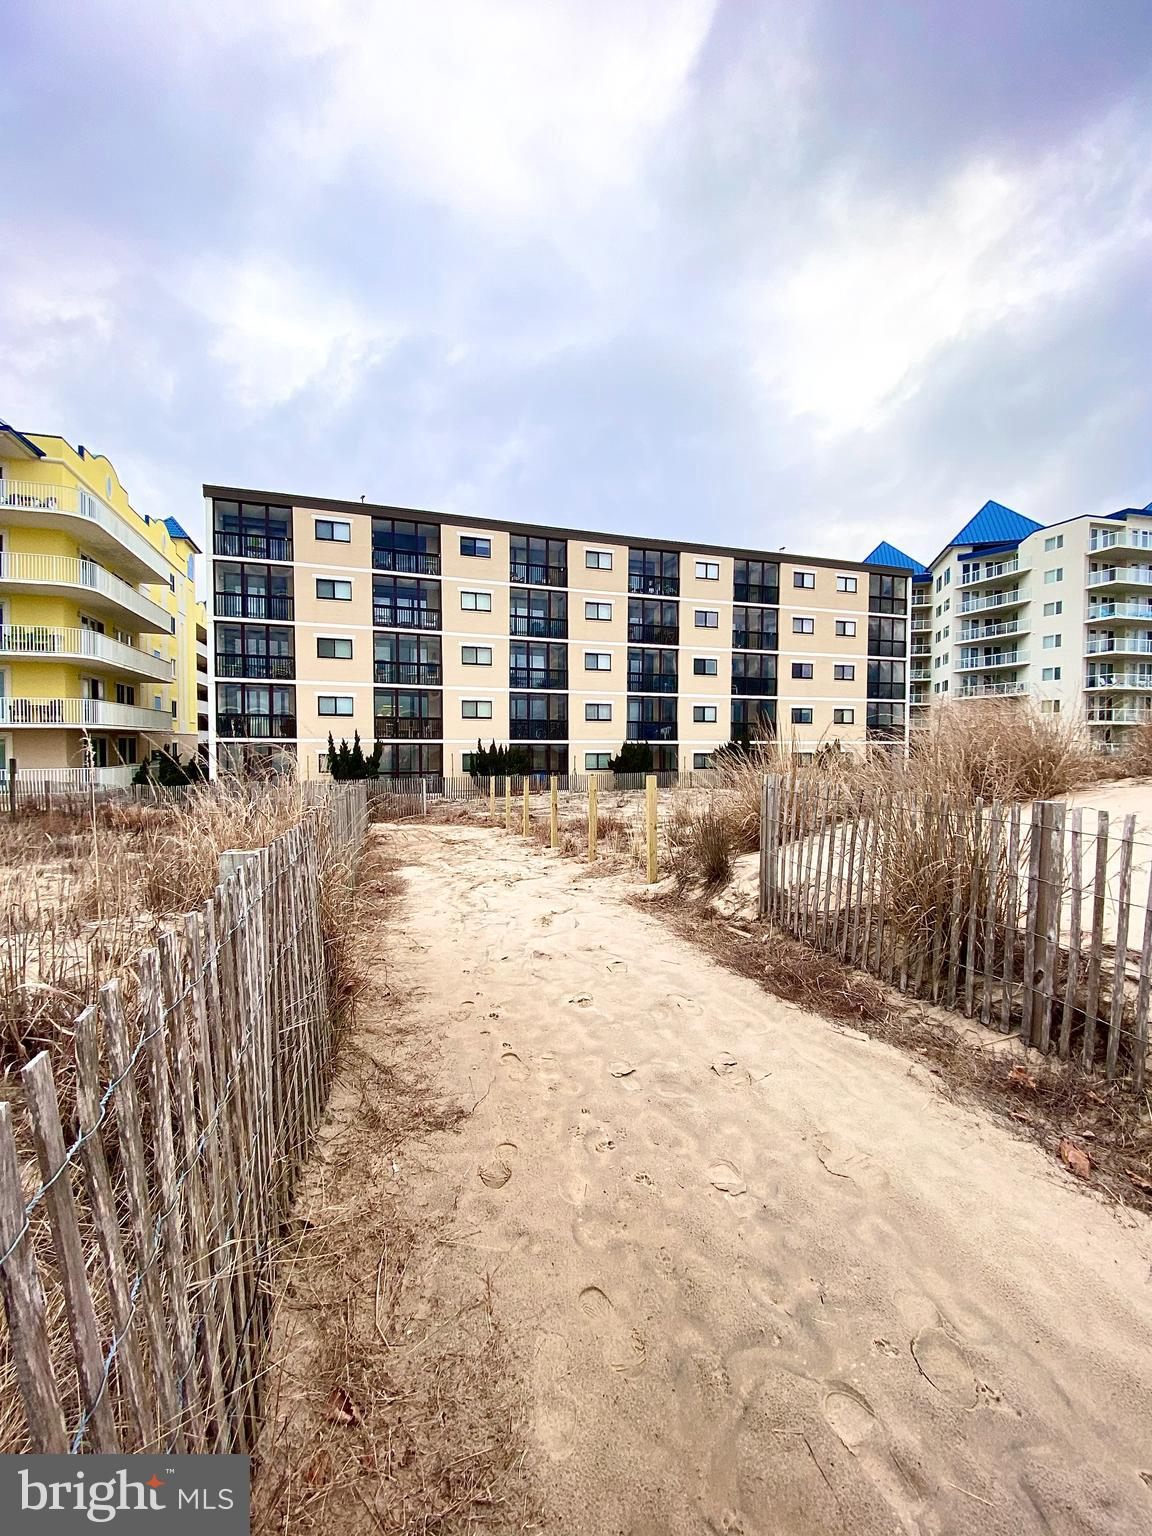 Great opportunity to own a well-maintained, clean, DIRECT OCEANFRONT condo in a much desired mid-town location in Ocean City, MD. Beautiful unobstructed views of the Atlantic Ocean from the living, dining room, and primary bedroom! The second slider in the primary bedroom allows for additional enjoyment on your private covered balcony.  Collect seashells while strolling along the 10-mile stretch of beach from the inlet to the Delaware line , and beyond. Water skiing, boating, fishing, jet skiing, paddle boarding and kayaking are just a few of the activities that are close by! After long days in the sun you'll be ready for a nice stroll along 3 miles of food, games, and shopping along the classic wooden boardwalk.